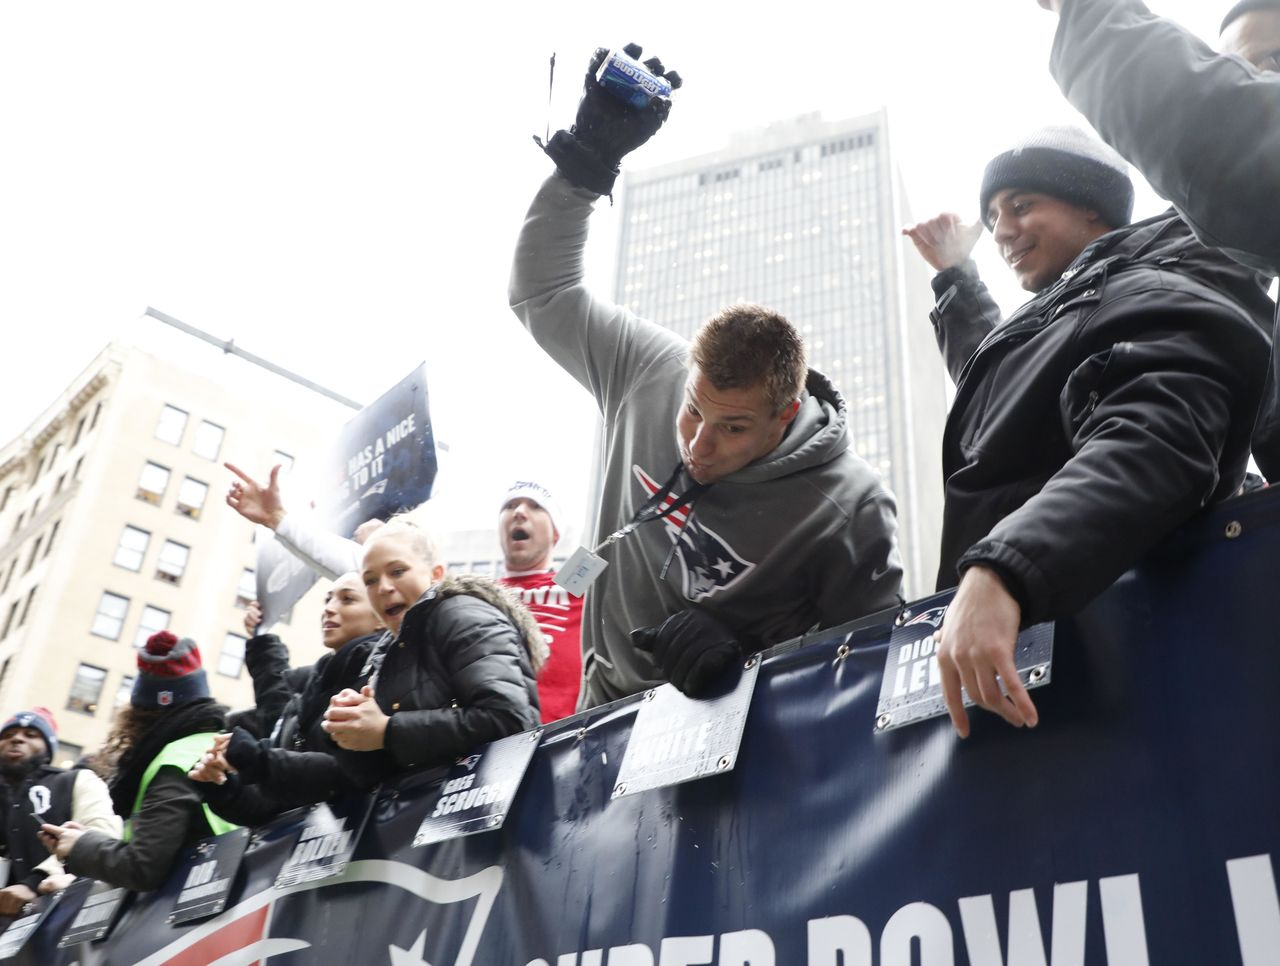 Cropped 2017 02 07t212042z 857268524 nocid rtrmadp 3 nfl super bowl li champions new england patriots parade